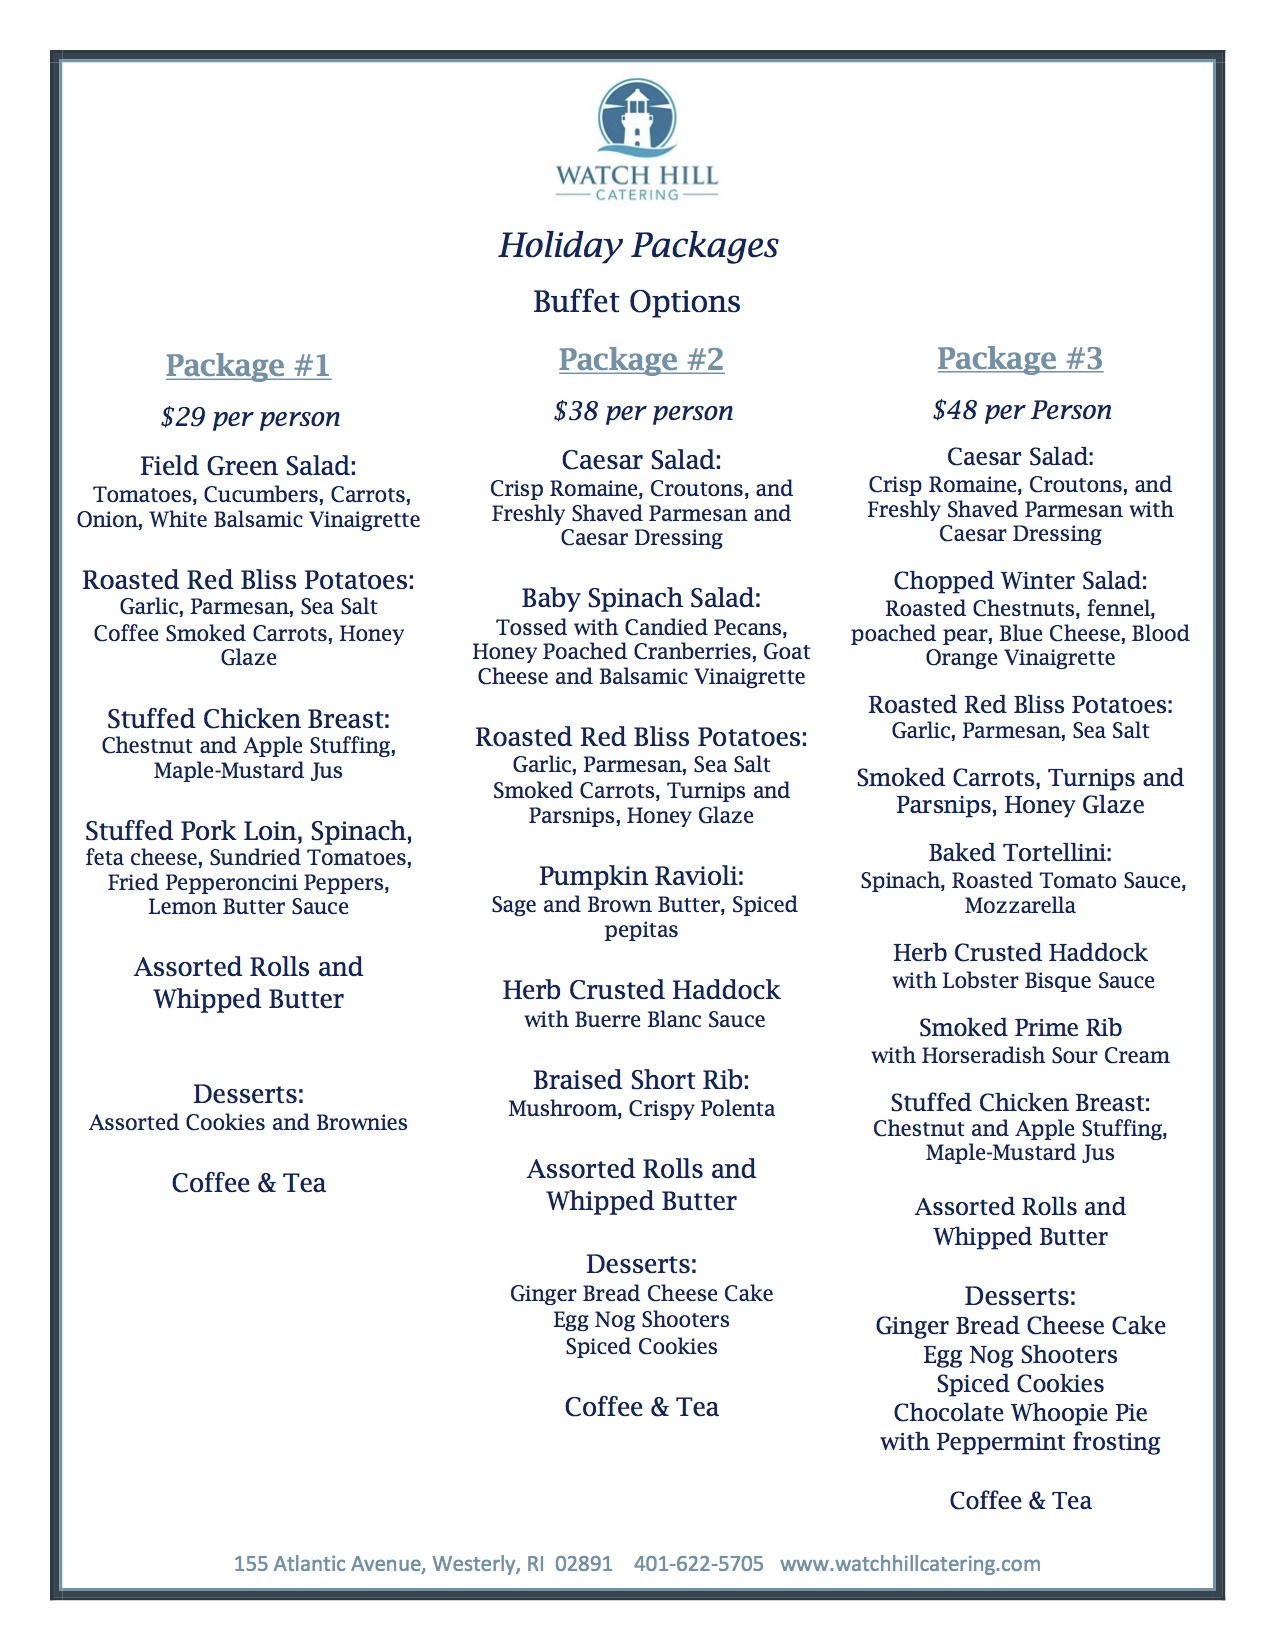 Watch Hill Catering Holiday Menus